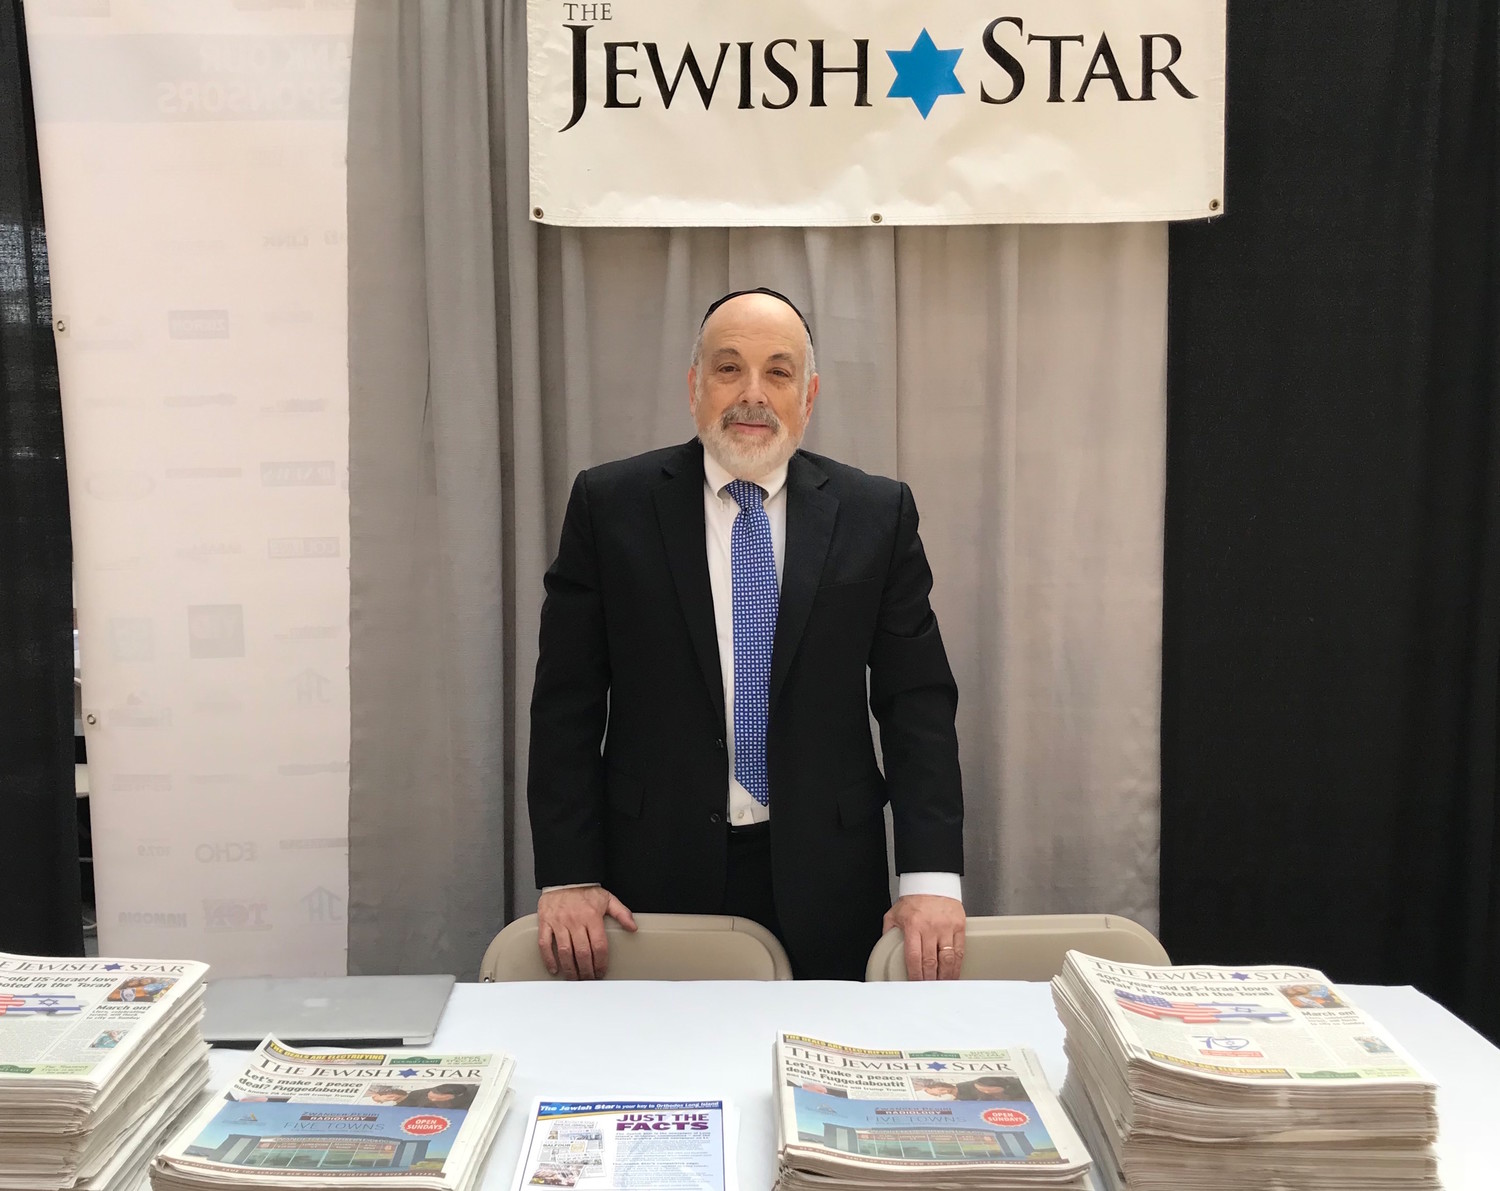 Jewish Star Publisher Ed Weintrob represented the newspaper at the Jewish business-to-business event.